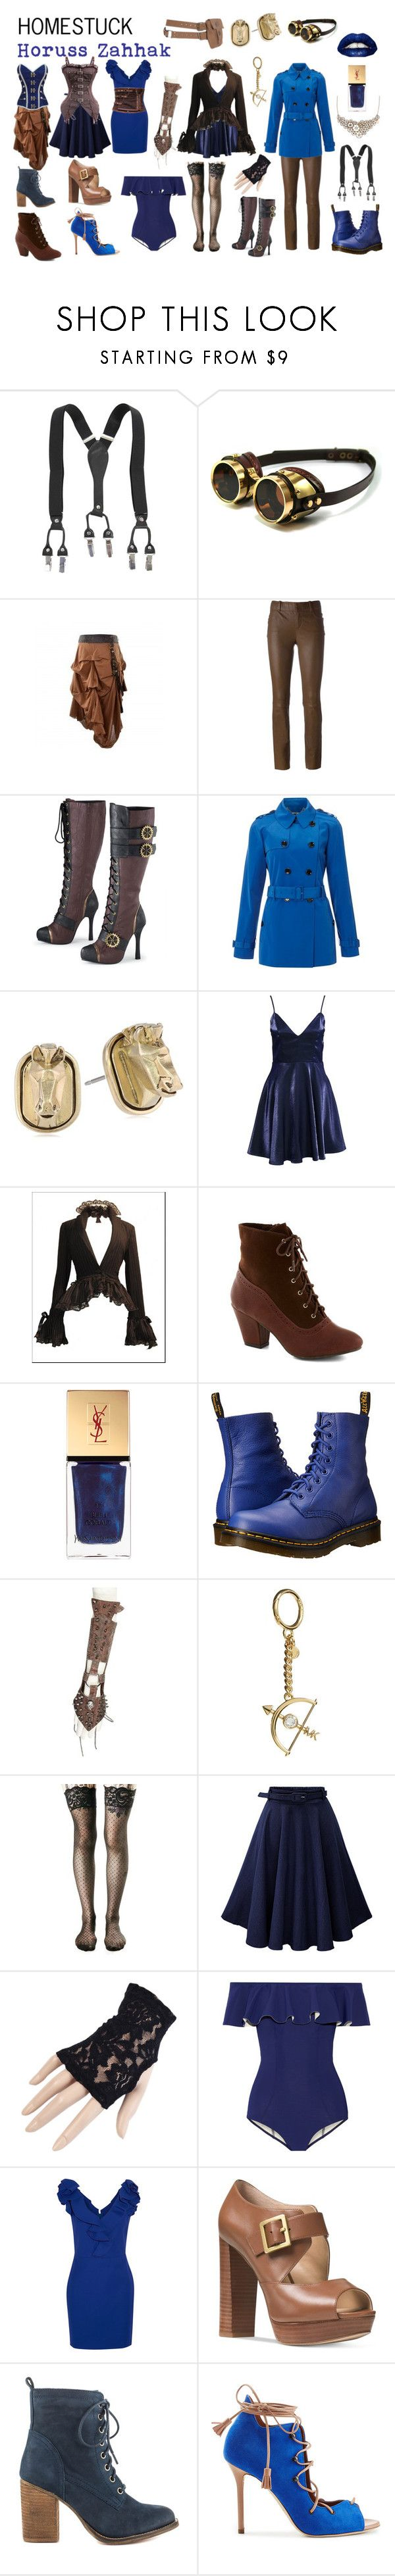 """Homestuck Fashion: Horuss Zahhak"" by khainsaw ❤ liked on Polyvore featuring STOULS, Episode, Sam Edelman, But Another Innocent Tale, Yves Saint Laurent, Bertha, Dr. Martens, MICHAEL Michael Kors, Leg Avenue and Black"